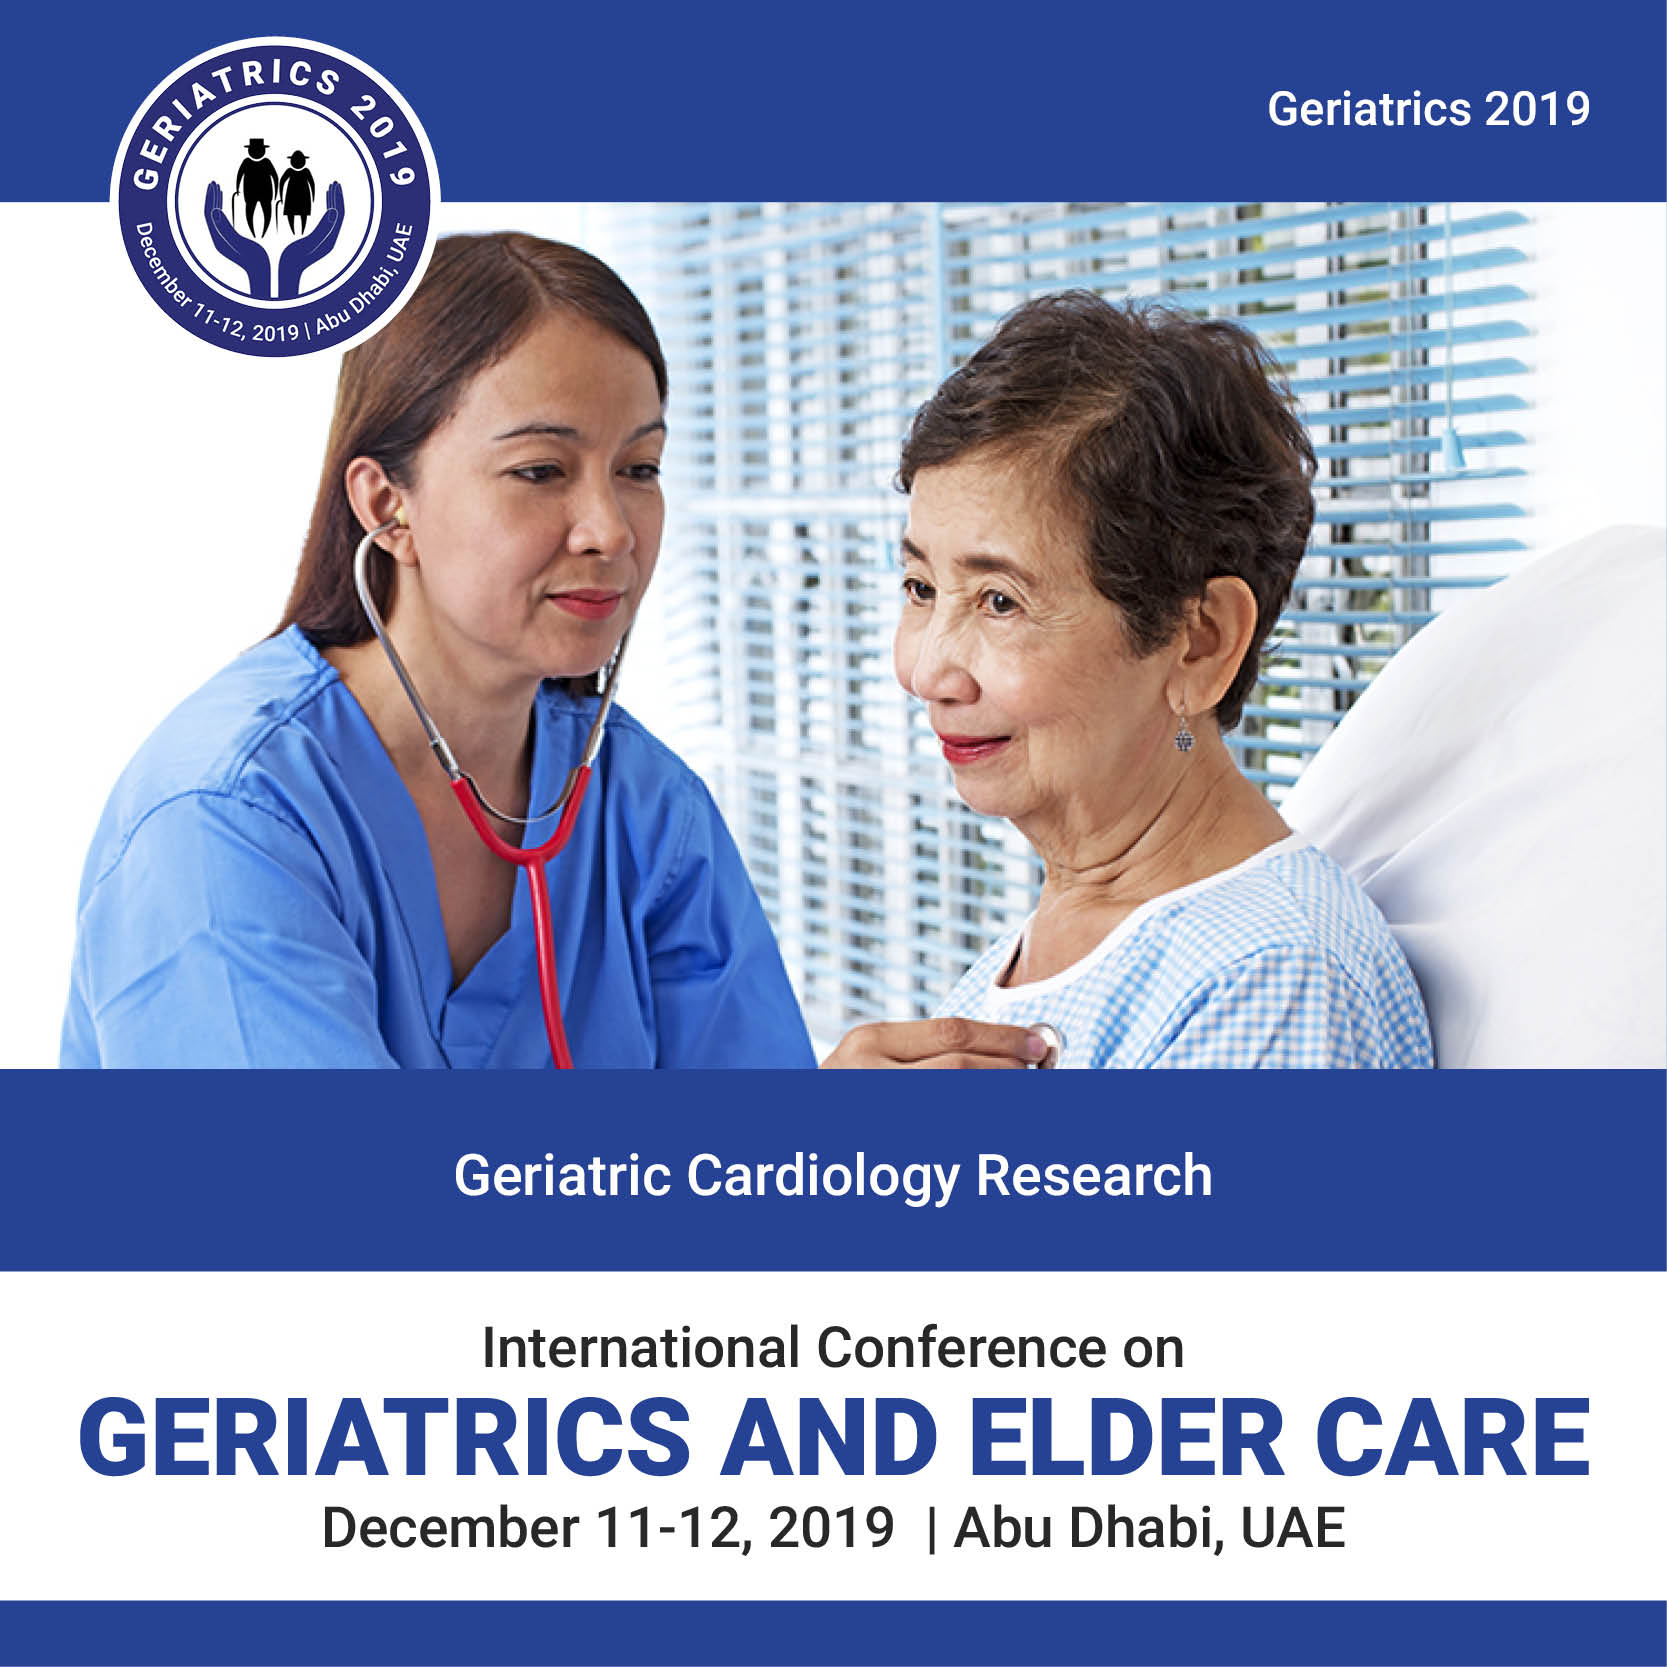 Geriatric Cardiology Research Photo